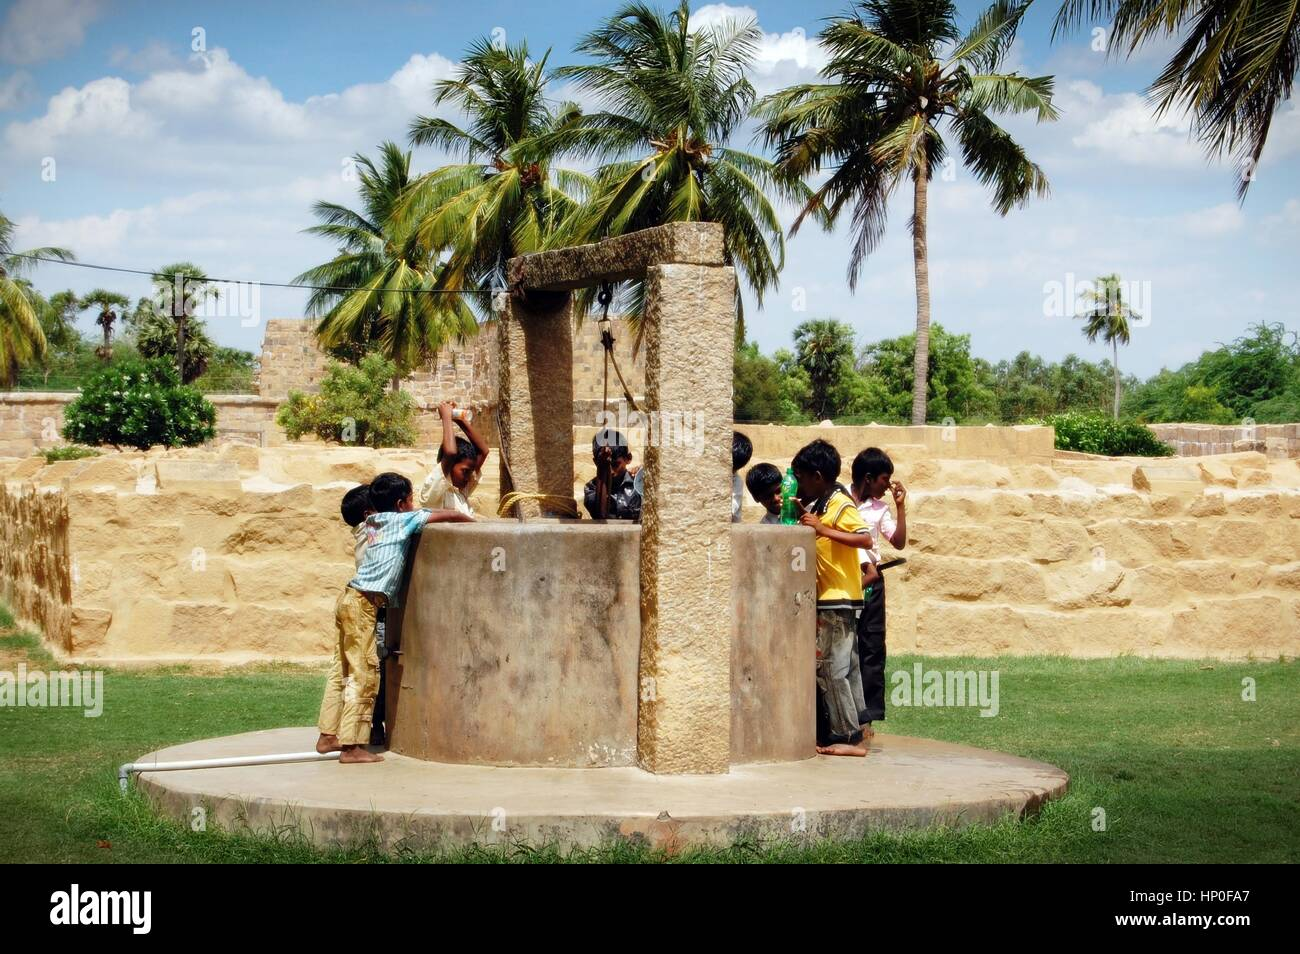 Indian boys gather at the well to draw water on a blazing hot day in tamil nadu south india